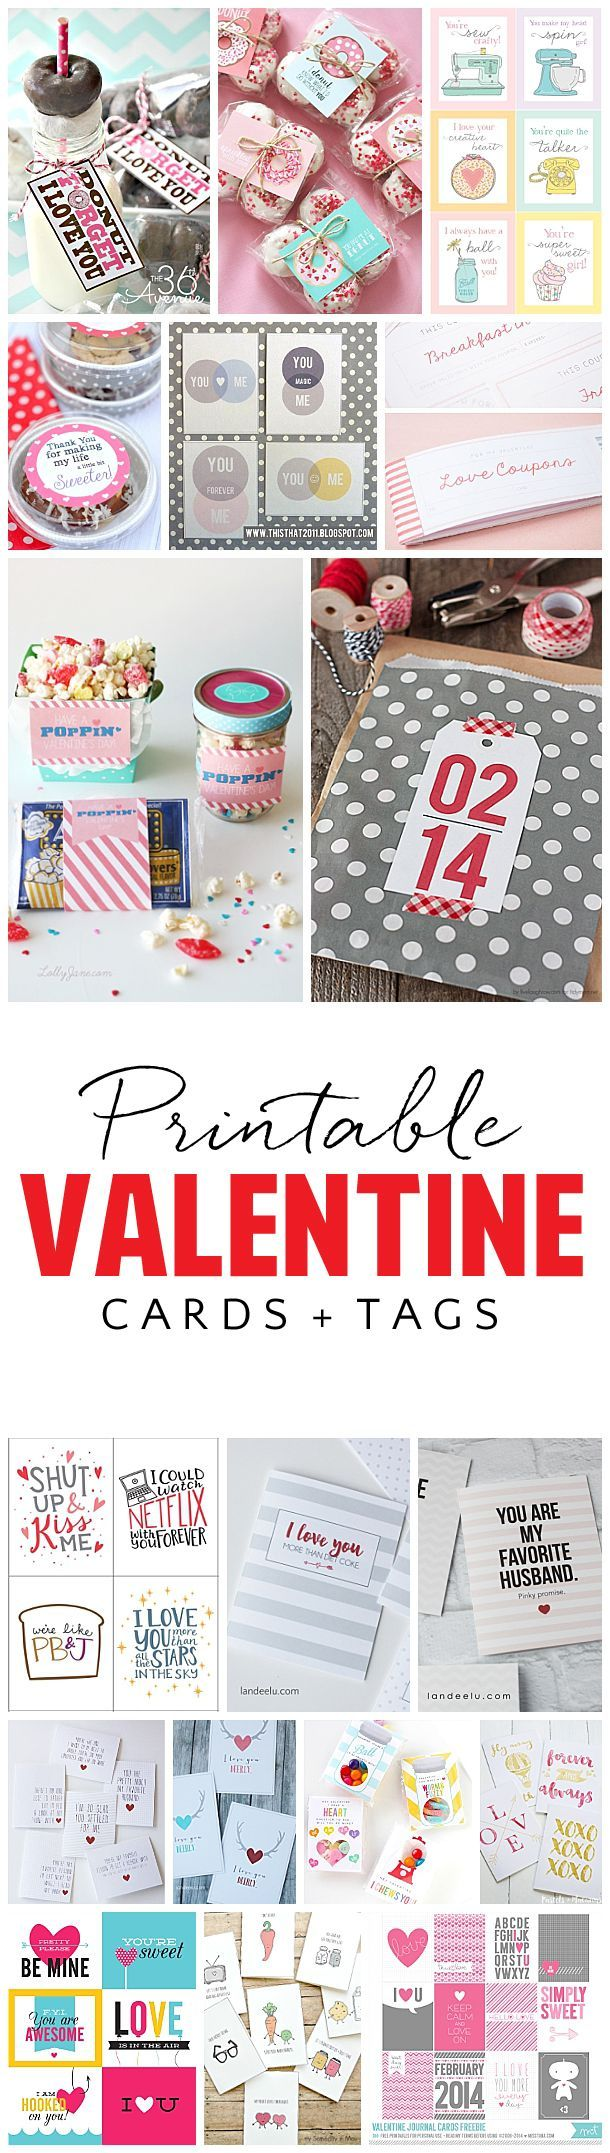 Tons of darling FREE Printables - Valentine's Day Greeting Cards and Gift Ta...